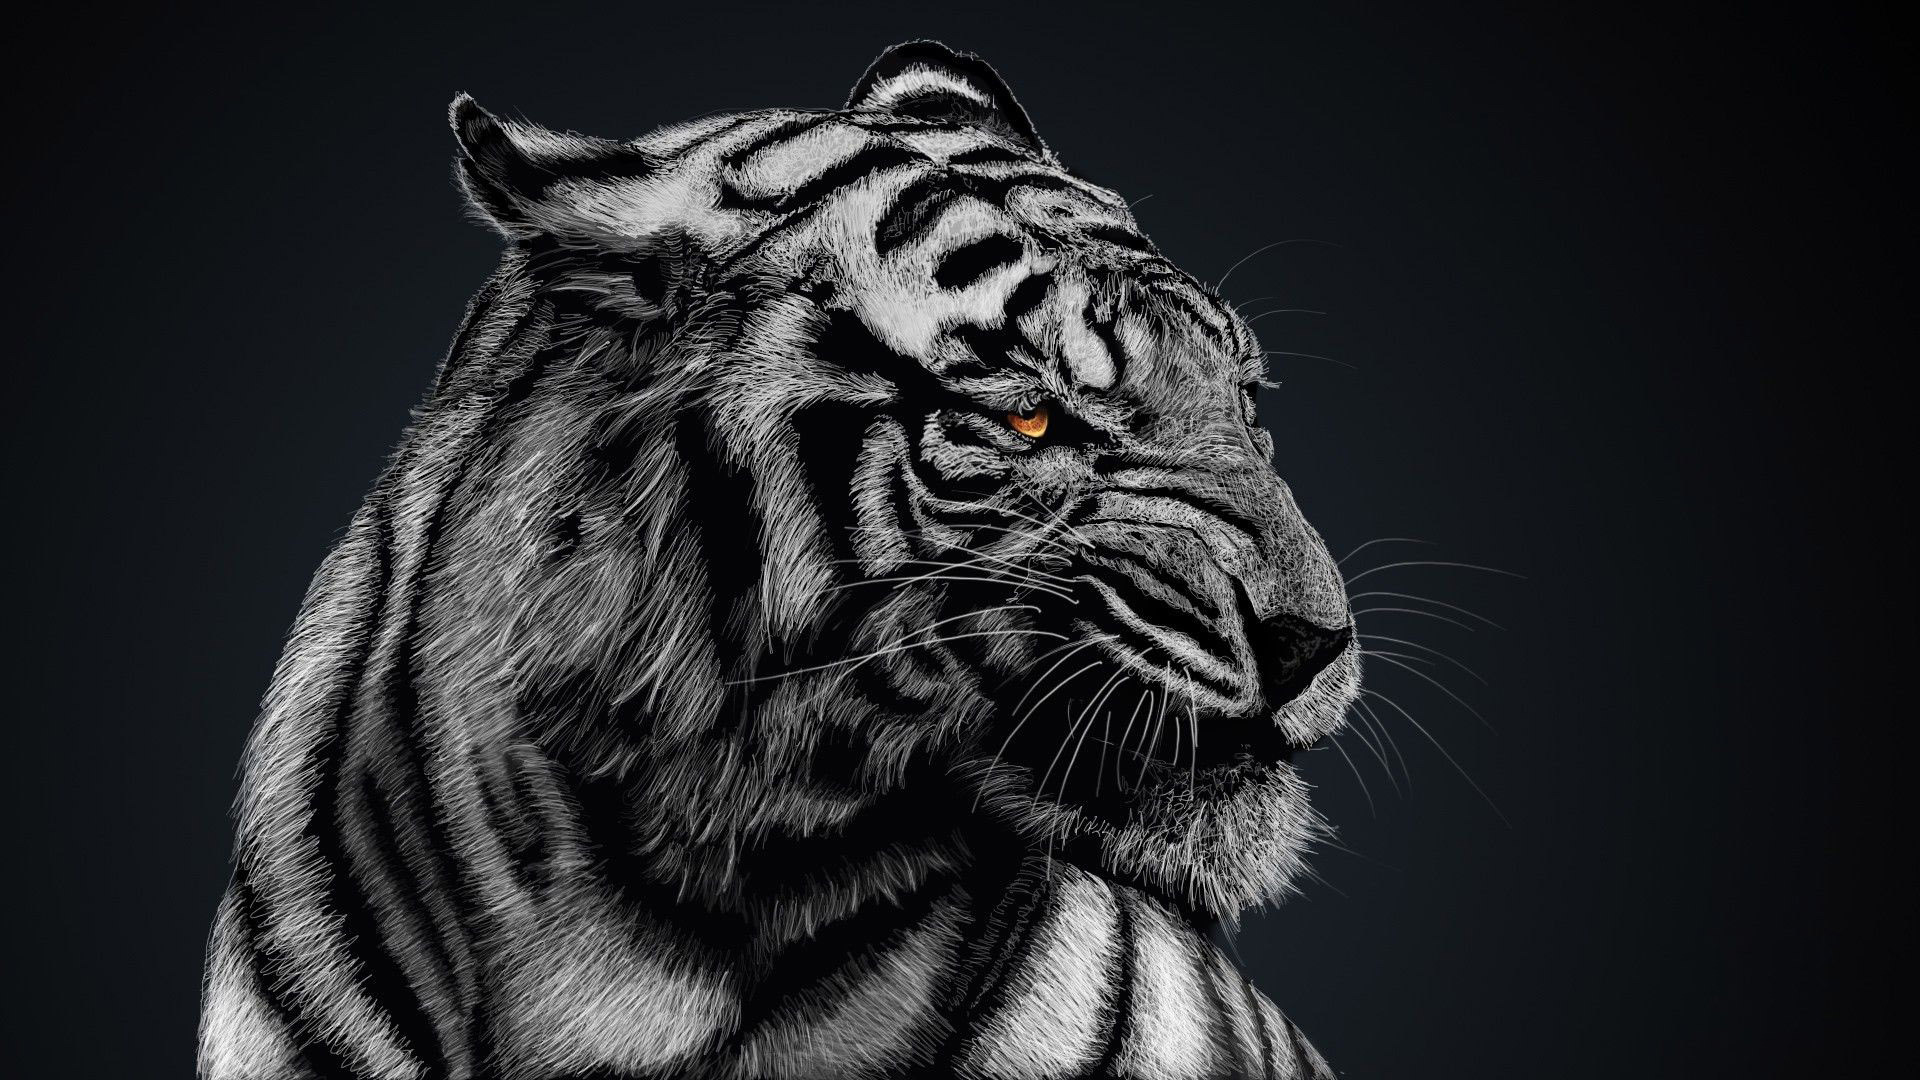 Tiger HD Wallpapers  Backgrounds  Wallpaper  1920x1080